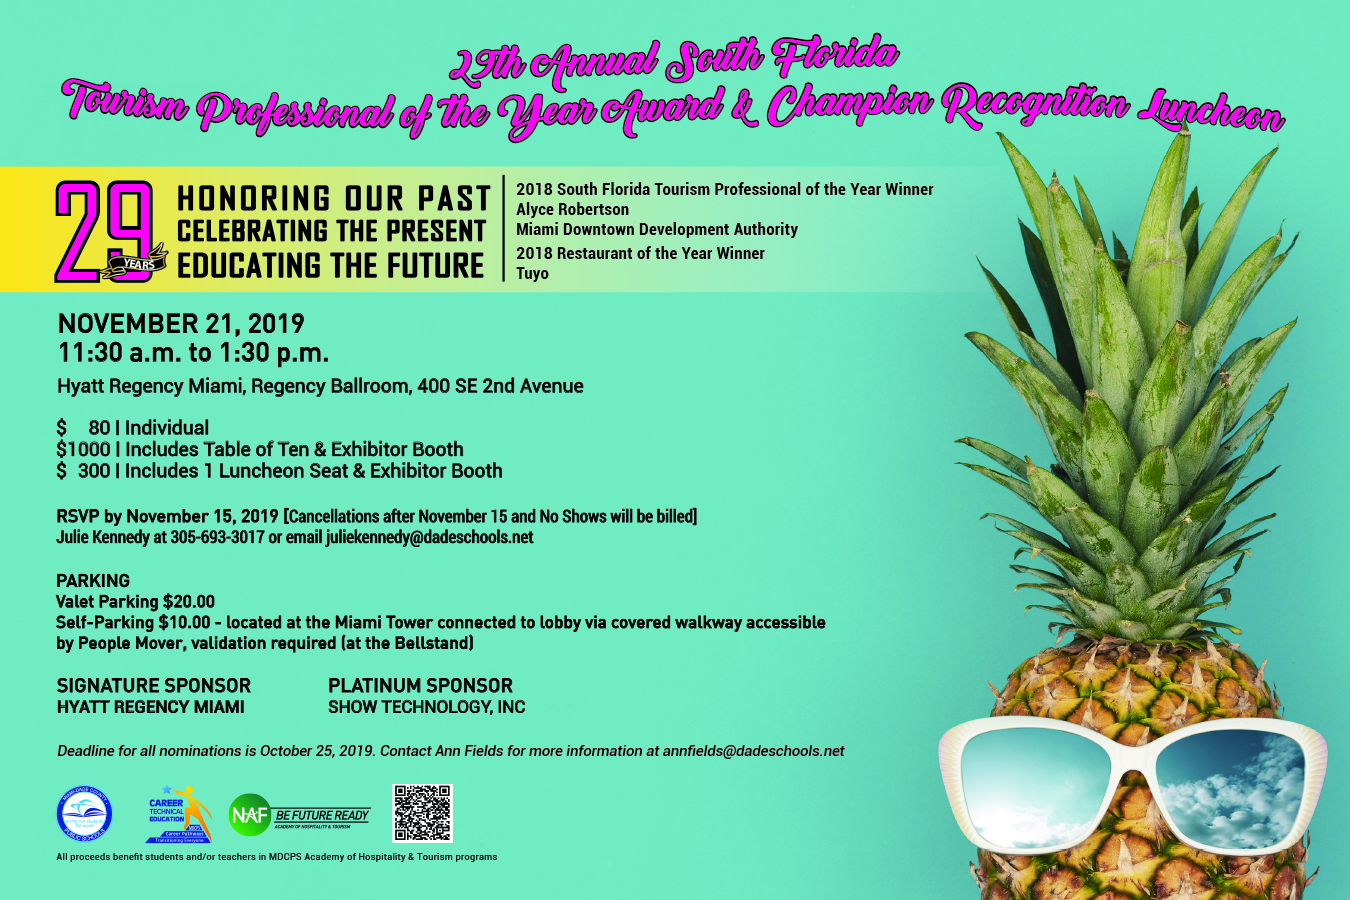 Nominations Open for 29th Annual South Florida Tourism Professional of the Year!